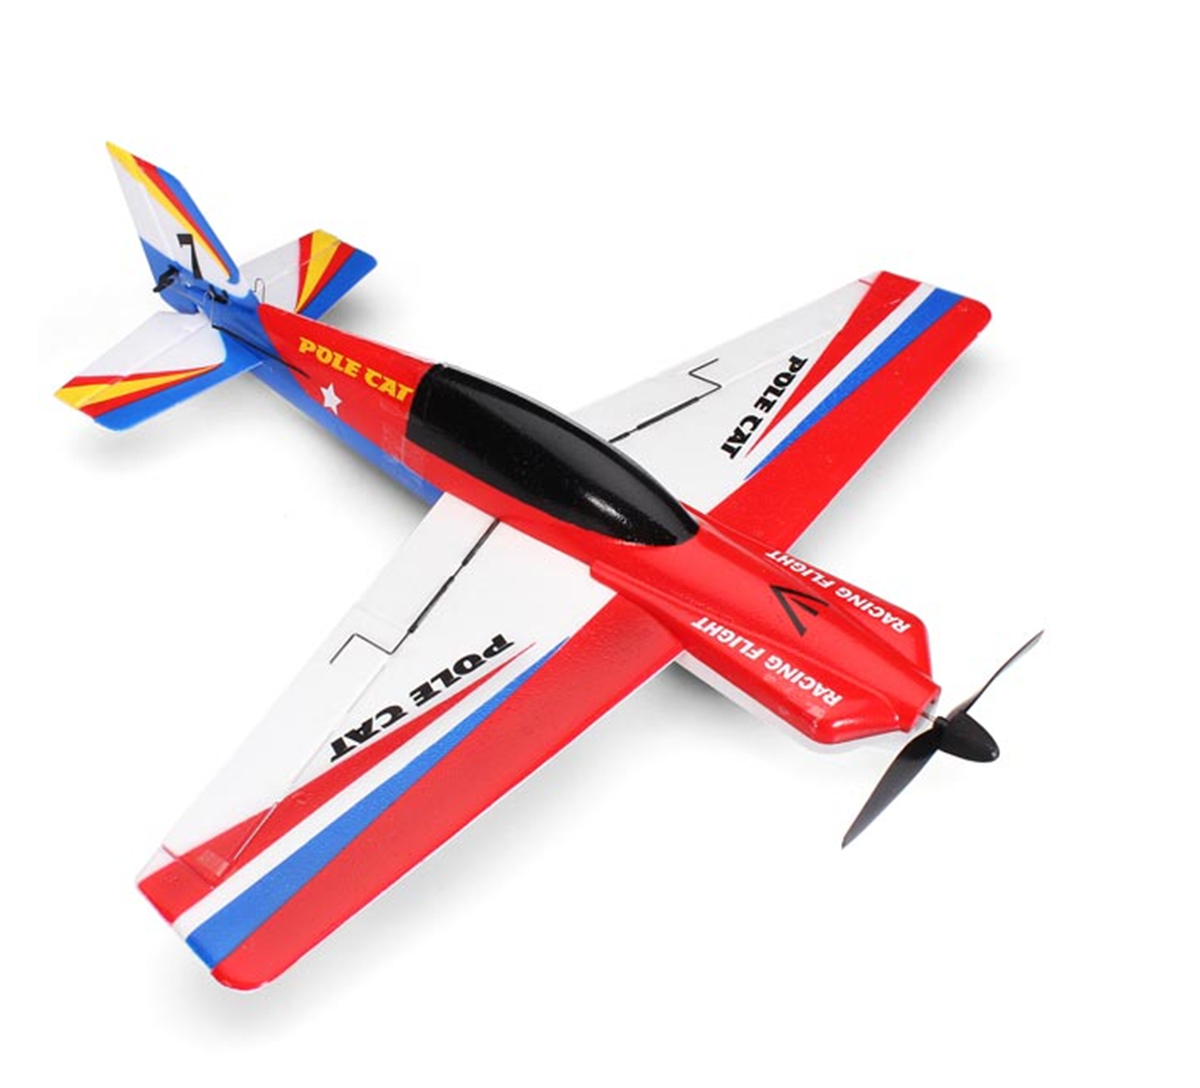 New Remote Control Plane Toys Wltoys F939 2.4G 4CH RC Airplane BNF Without Transmitter